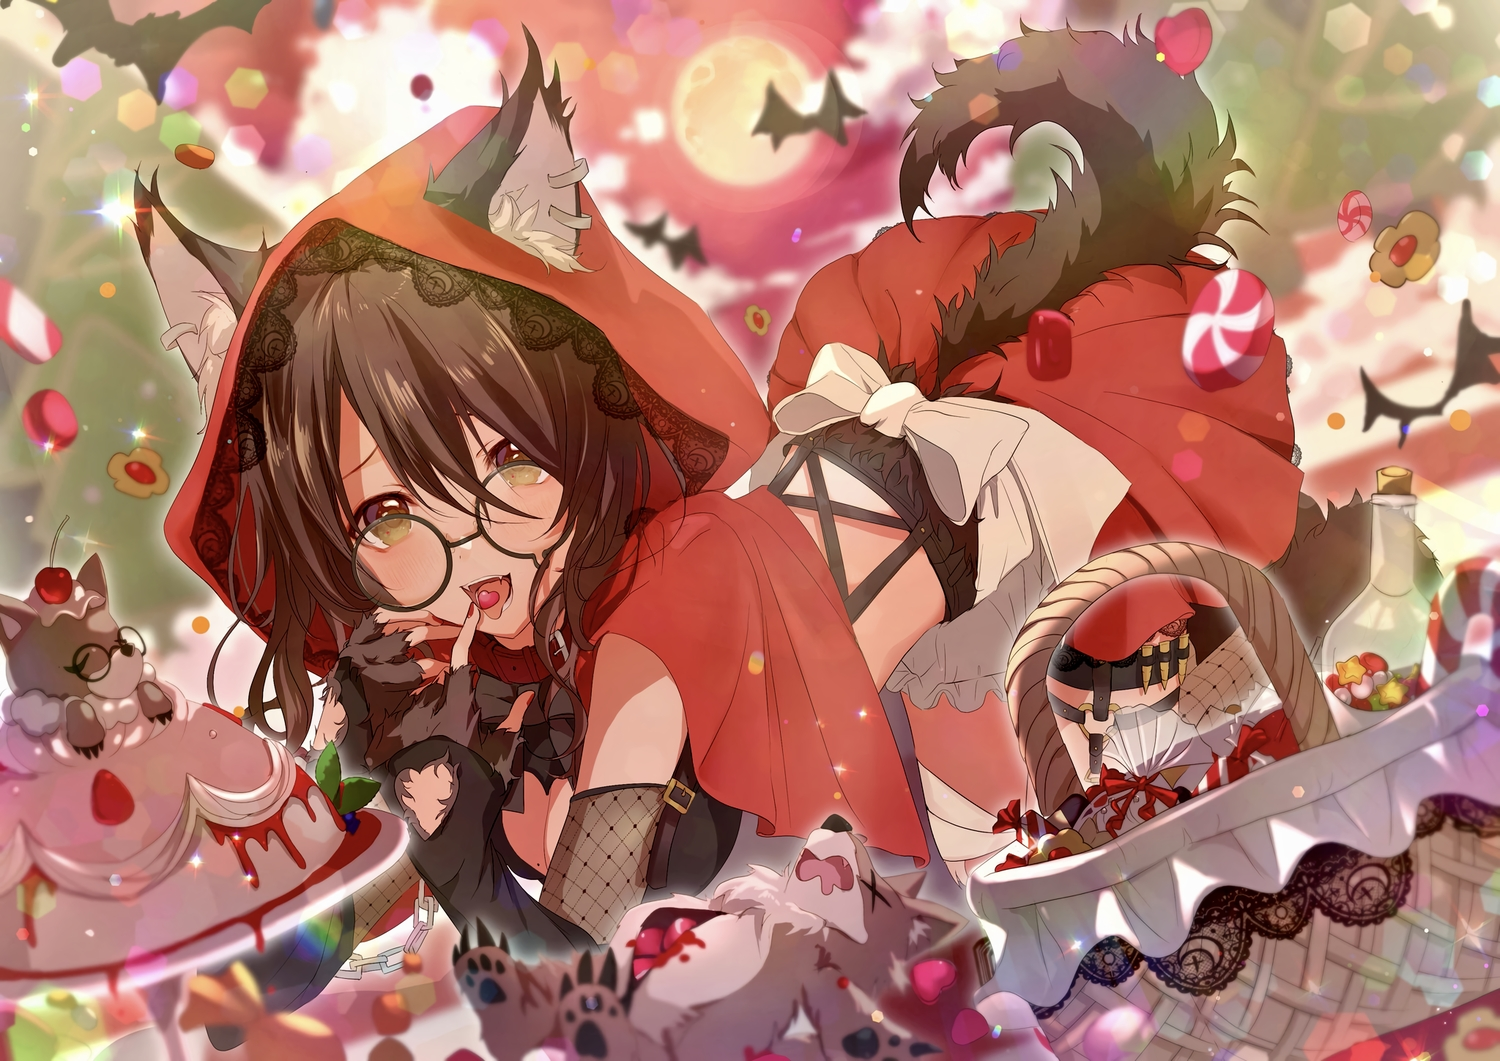 animal animal_ears bat blush breasts brown_eyes brown_hair cake candy cape chain cherry cleavage collar cosplay elbow_gloves fang food fruit garter glasses gloves halloween hoodie light_up little_red_riding_hood moon peach_punch skirt strawberry tail wolfgirl yuzuki_uru